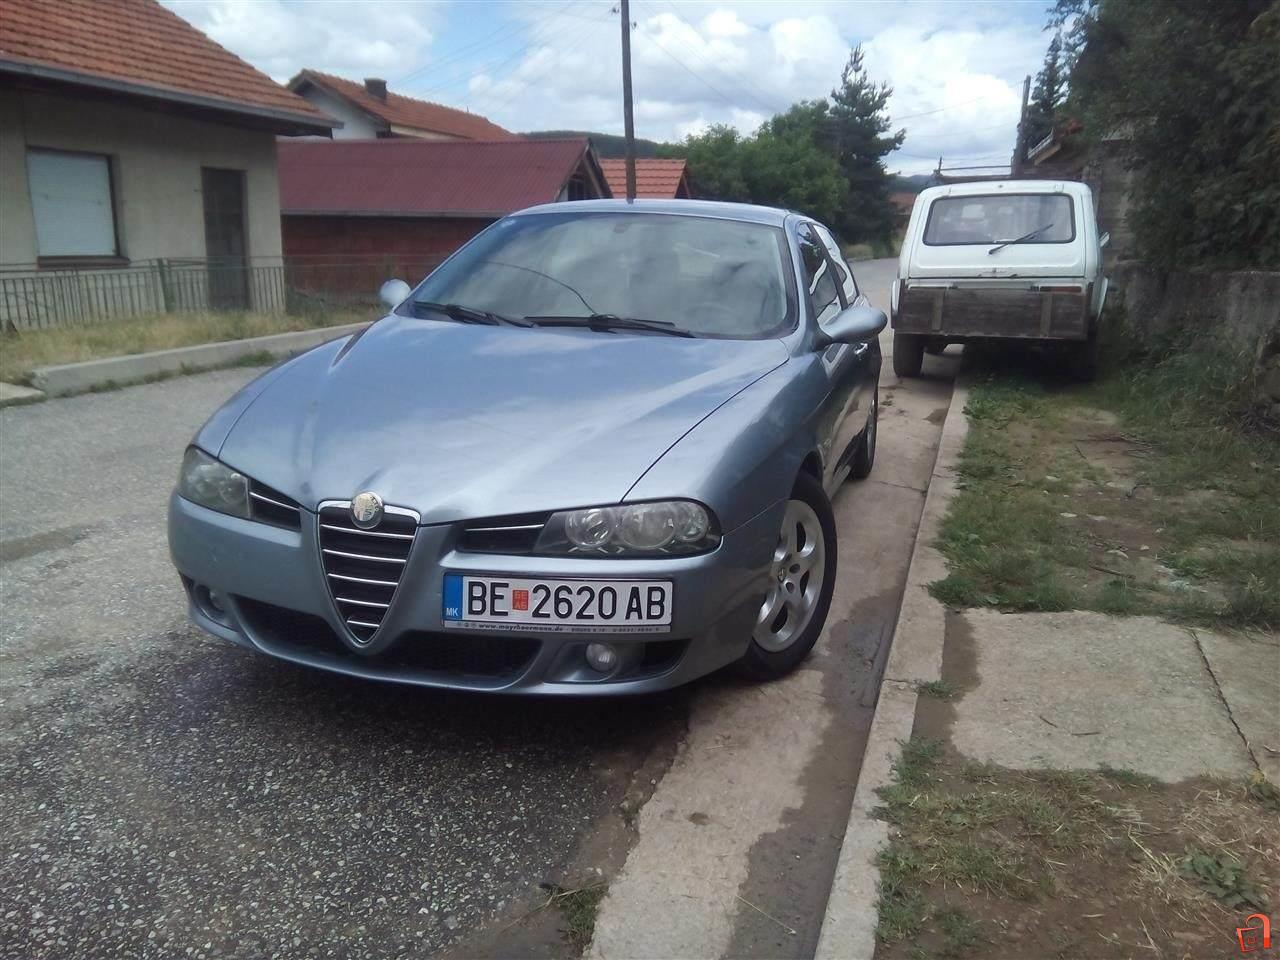 ad alfa romeo 156 1 9 jtd 16v 140 ks facelift for sale berovo vehicles. Black Bedroom Furniture Sets. Home Design Ideas